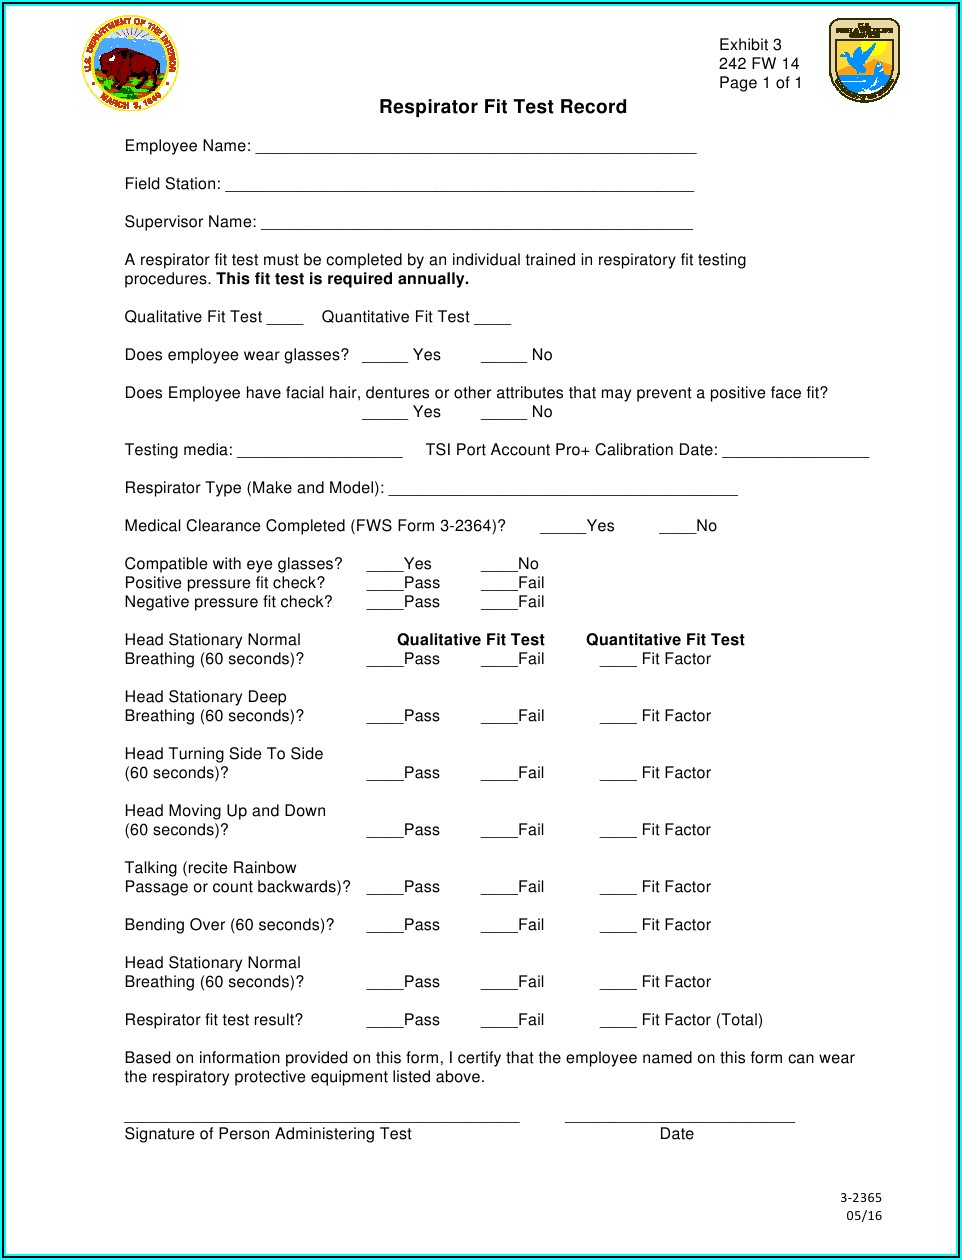 N95 Qualitative Fit Test Form